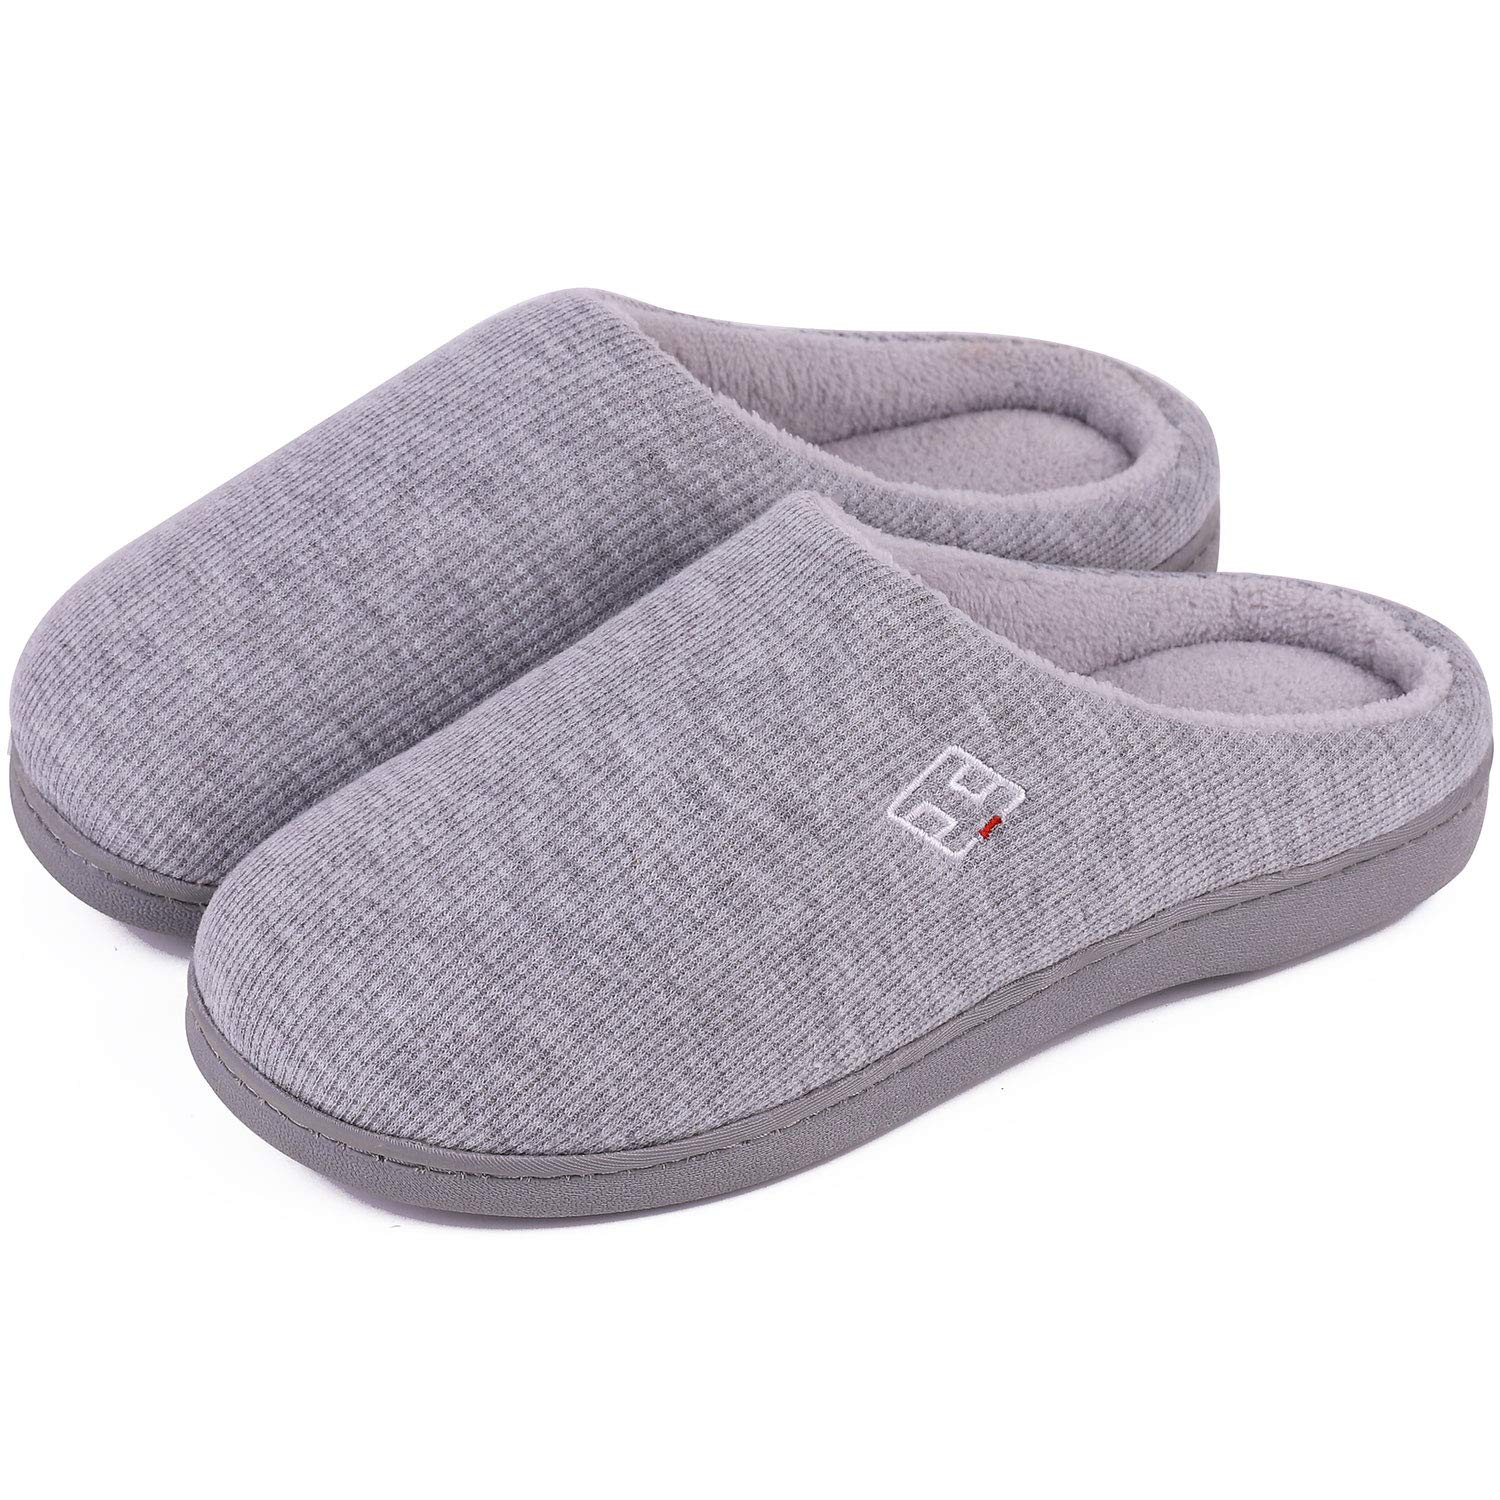 HomeIdeas Women's Classic Memory Foam Plush House Slippers Autumn Winter Breathable Indoor Outdoor Shoes